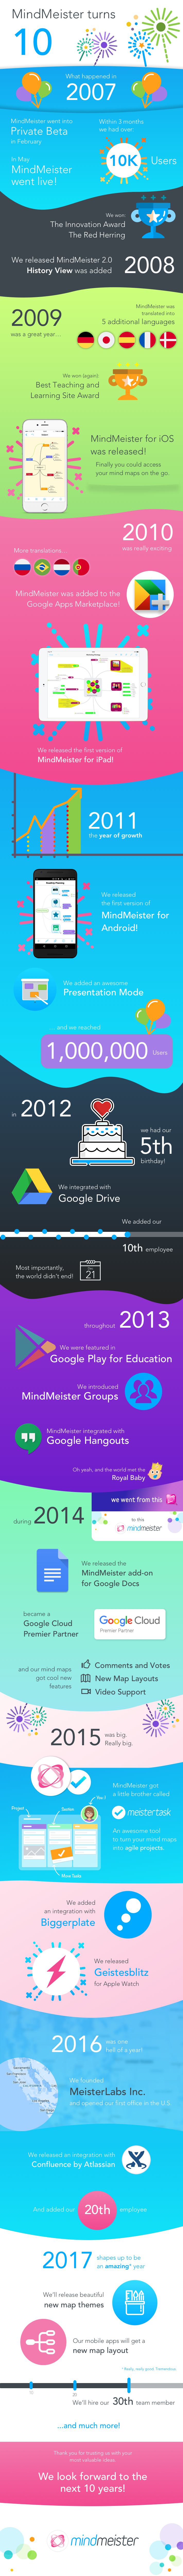 MindMeister turns 10 (infographic)